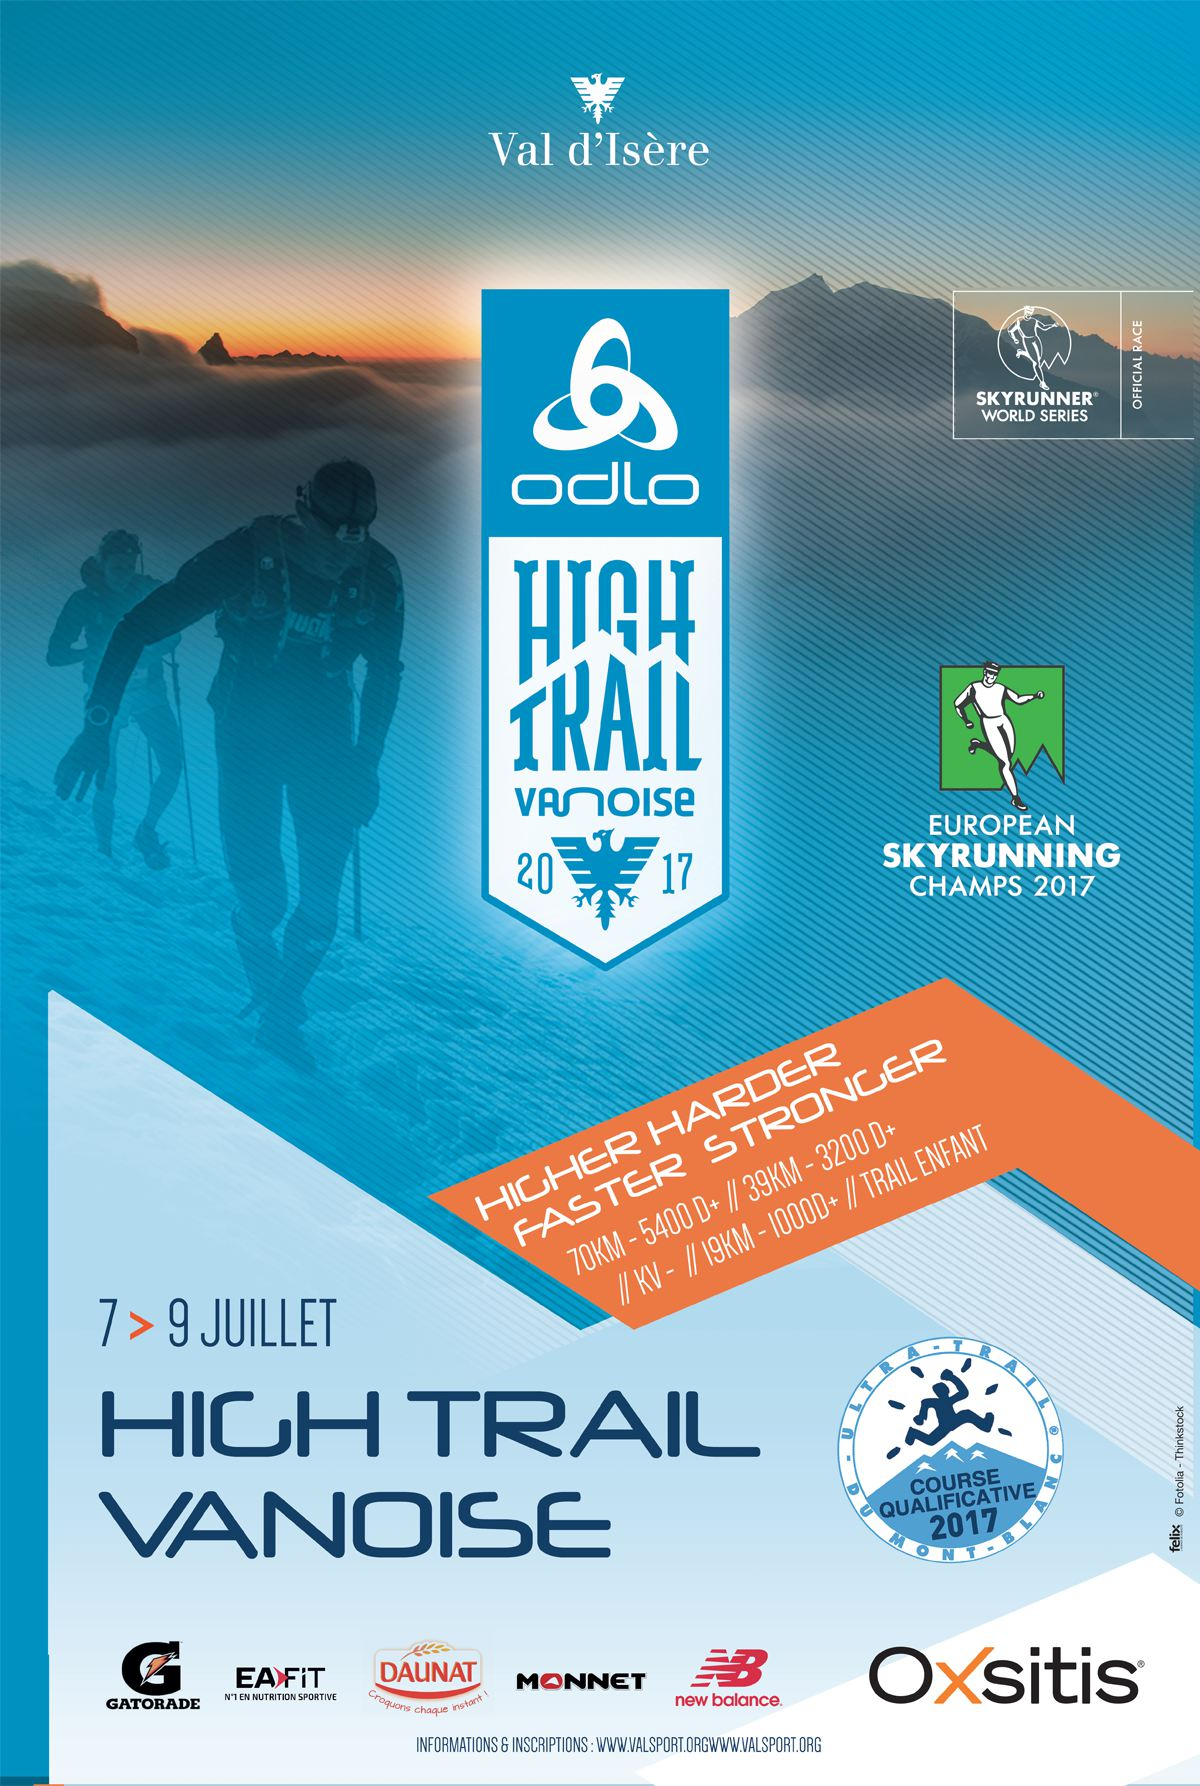 High Trail Val d'Isère course qualificative UTMB